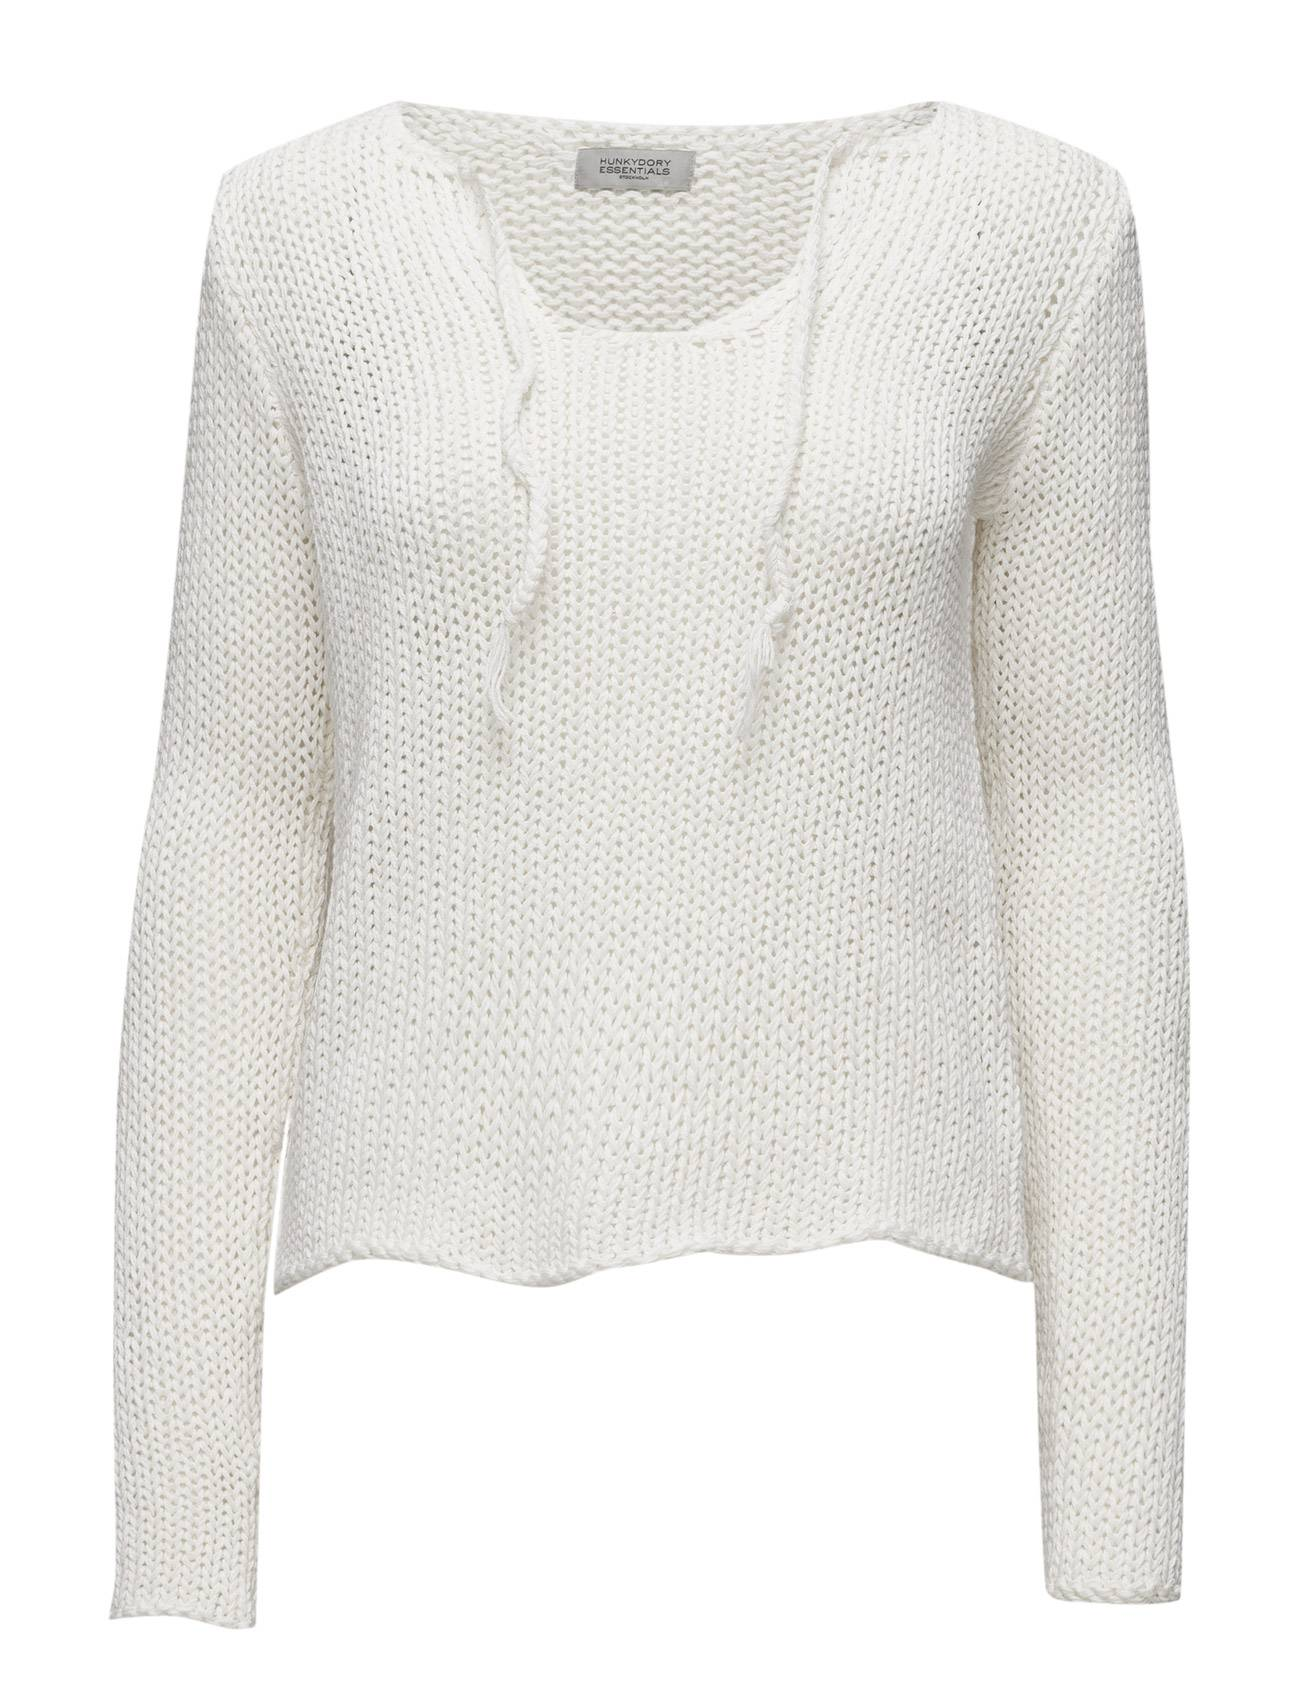 Hunkydory Essentials Banning Knit